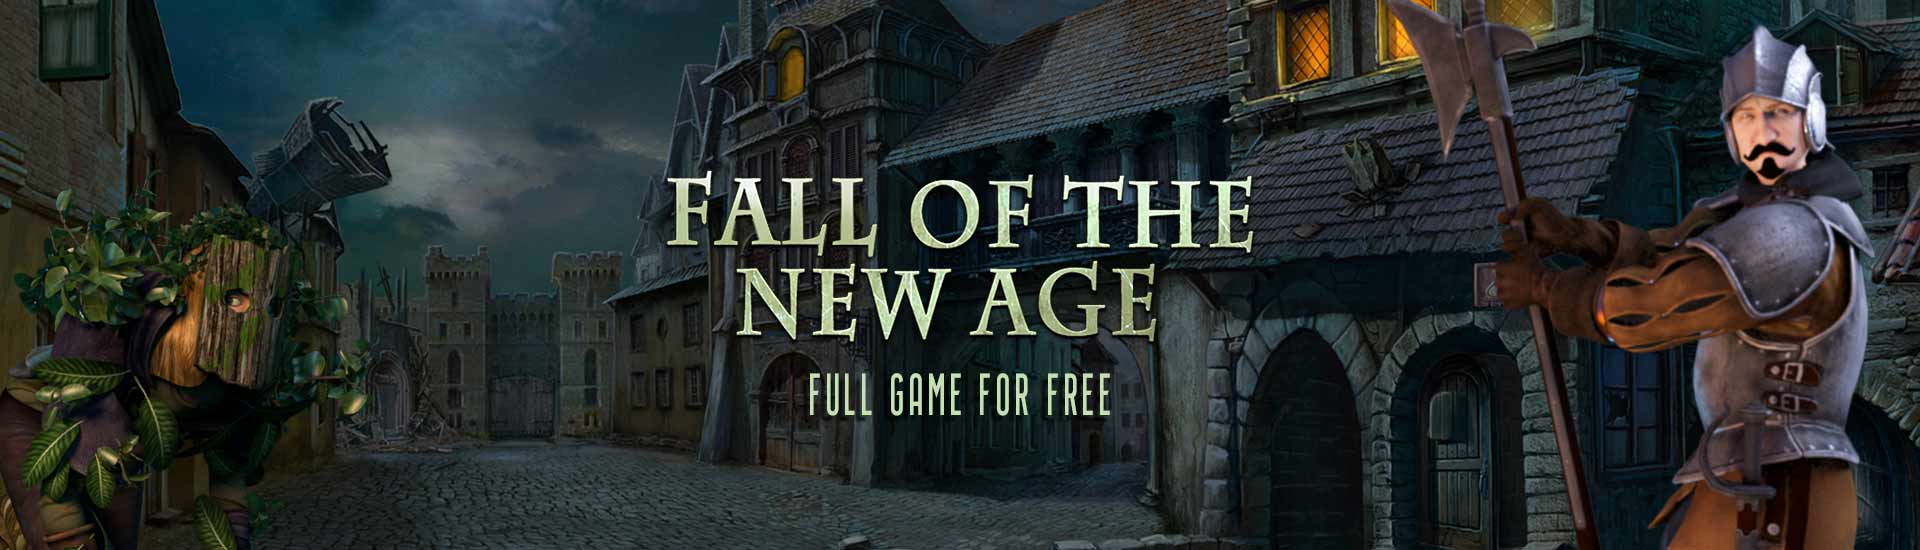 Fall of the New Age cover